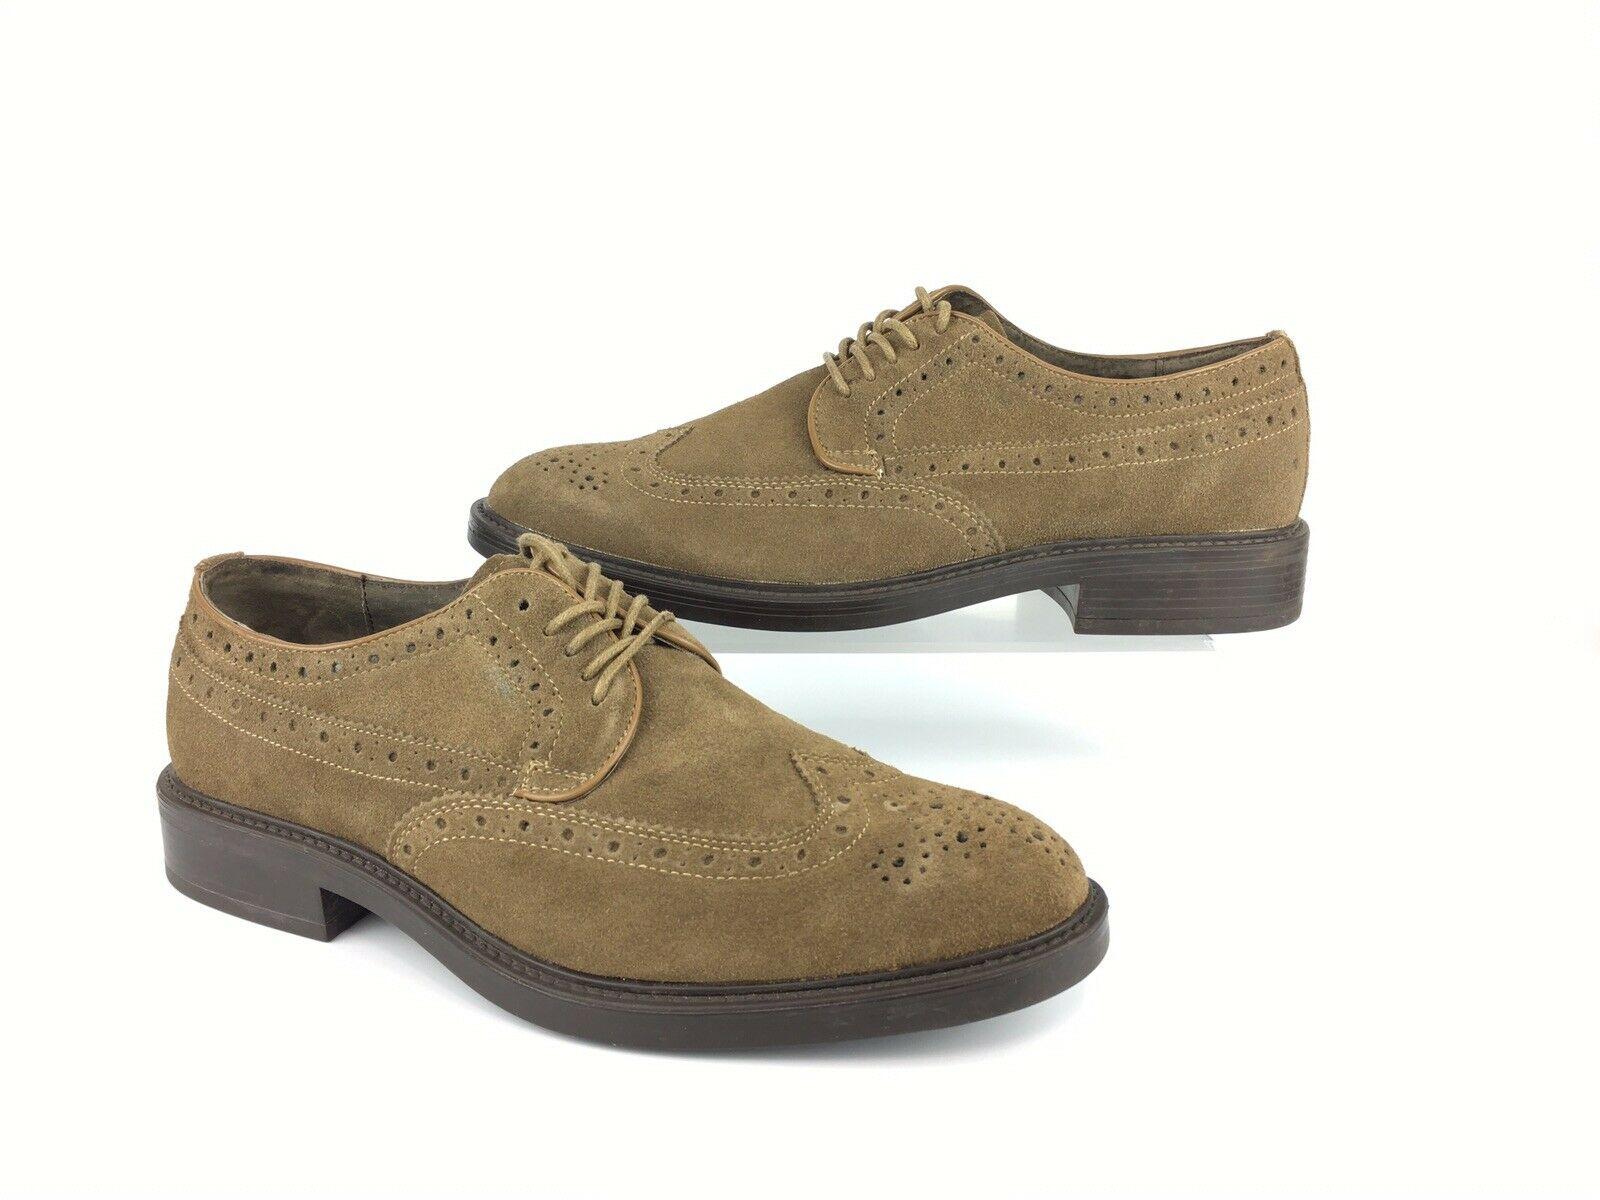 Joseph Abboud Oxford Size 9D Brown Suede Full Brogue Wing Tip Dress Shoes MO22